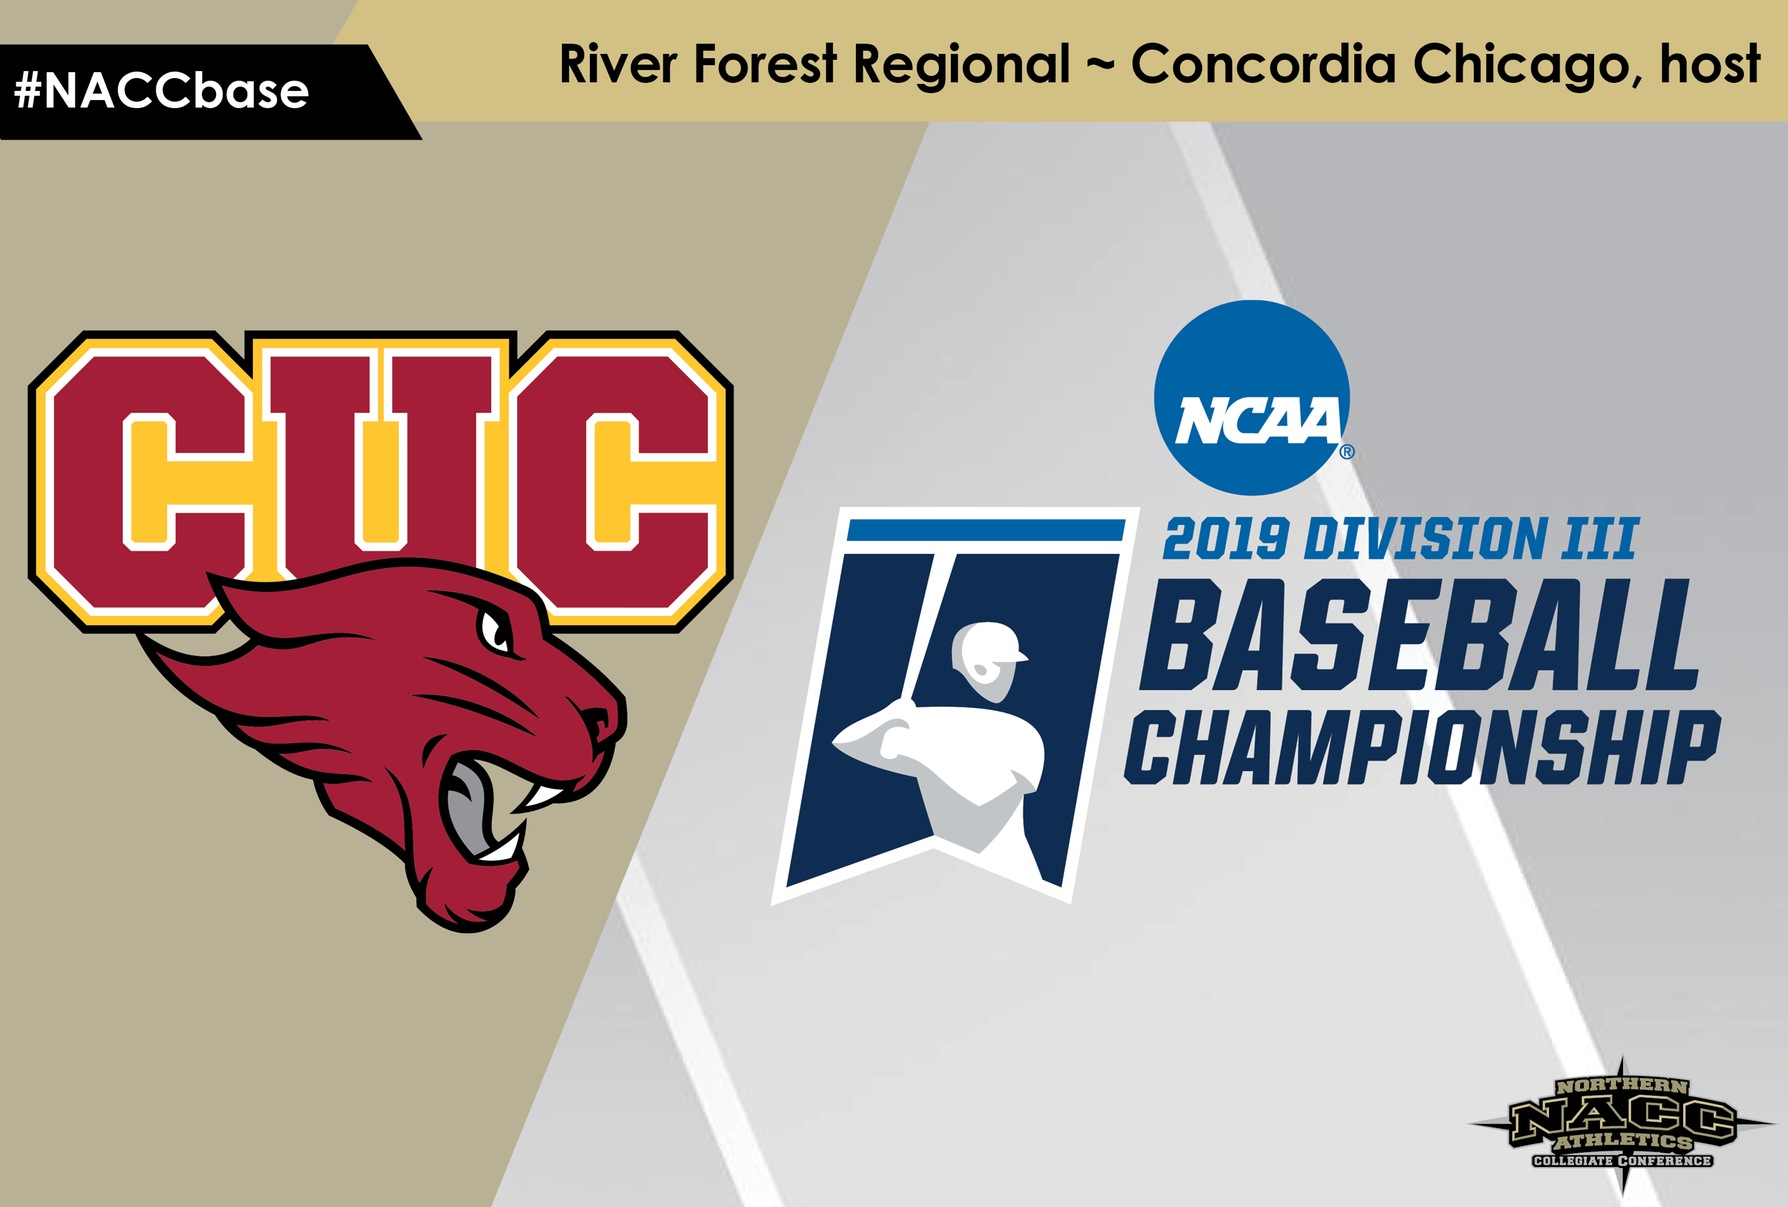 Concordia Chicago won a pair of elimination games Sunday to force a winner-take-all championship game Monday against Baldwin Wallace at the NCAA Division III Baseball River Forest Regional.